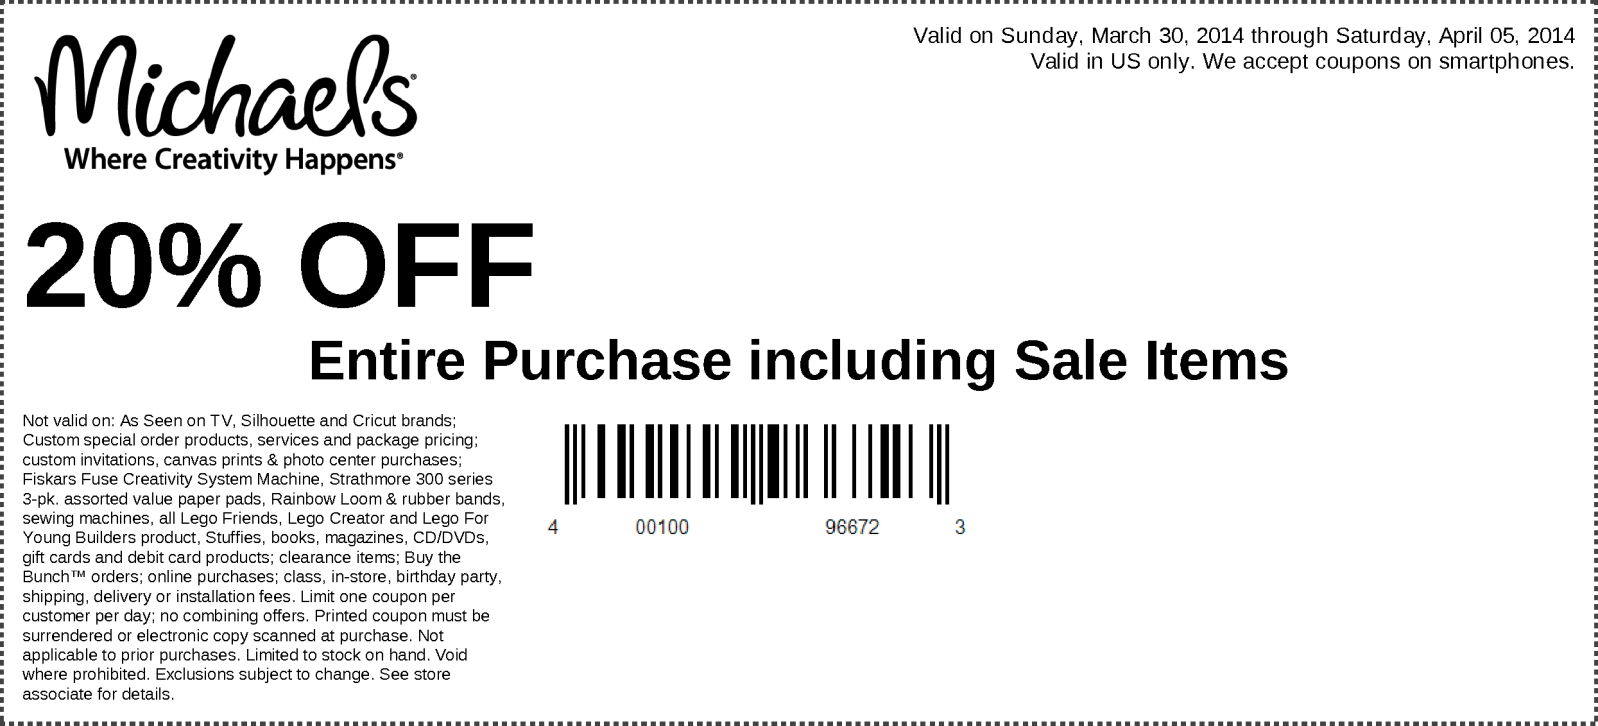 picture about Michaels Coupon Printable titled Michael printable coupon : Snappy nails broomfield